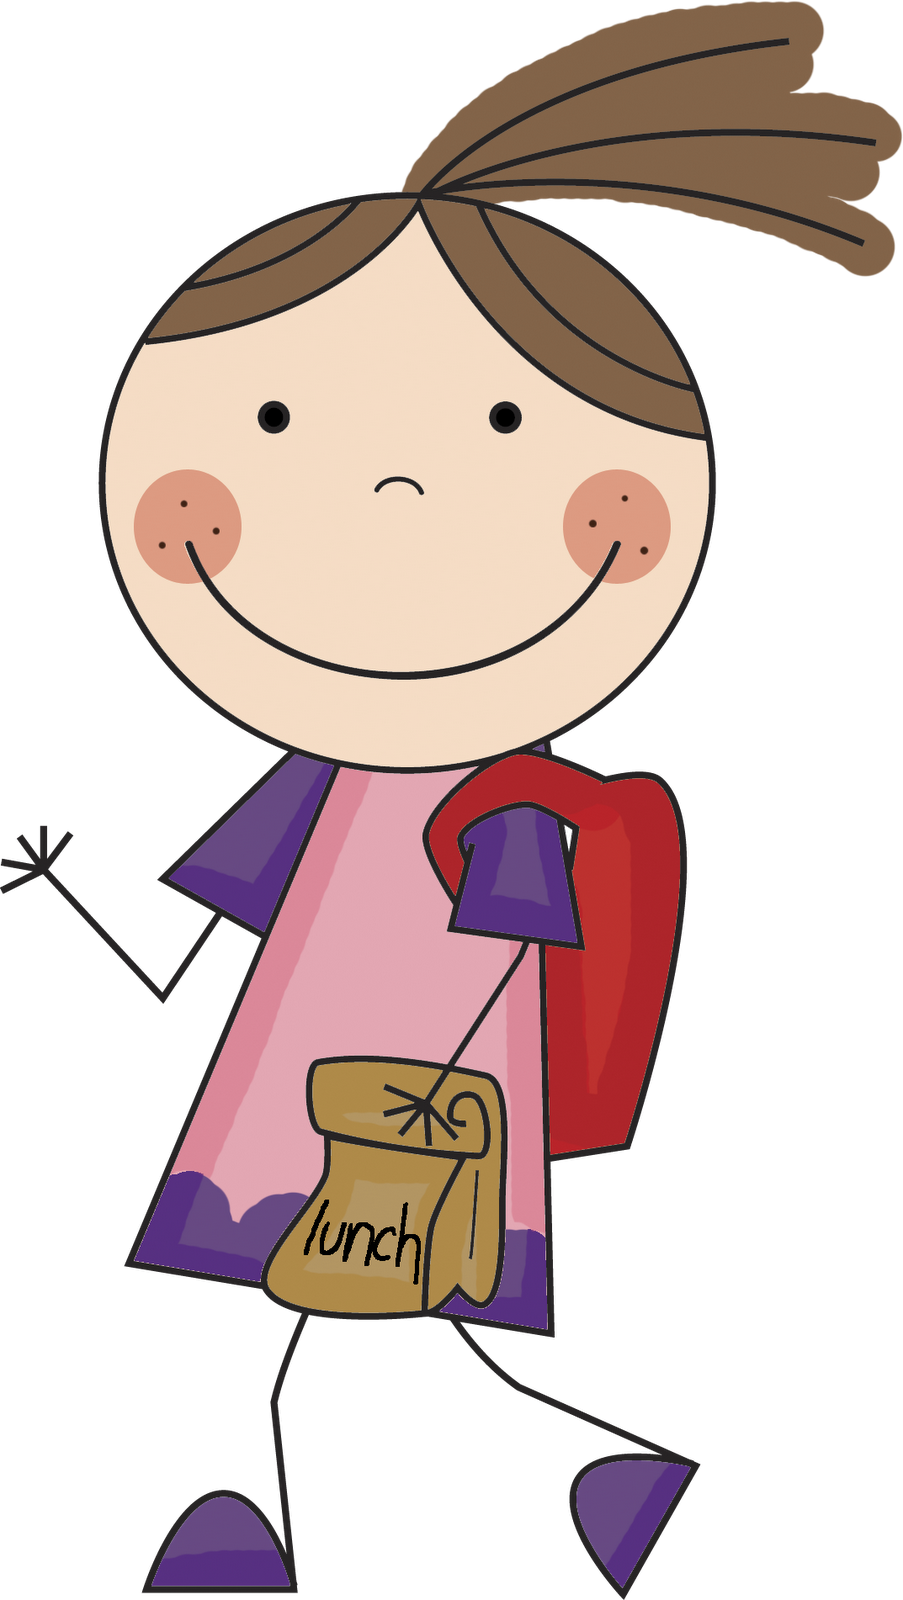 Girl going to school clipart jpg transparent library ☽ ̍̑⚈͜ ̍̑☾) Back To School | SCHOOL & BULLETIN BOARDS ... jpg transparent library